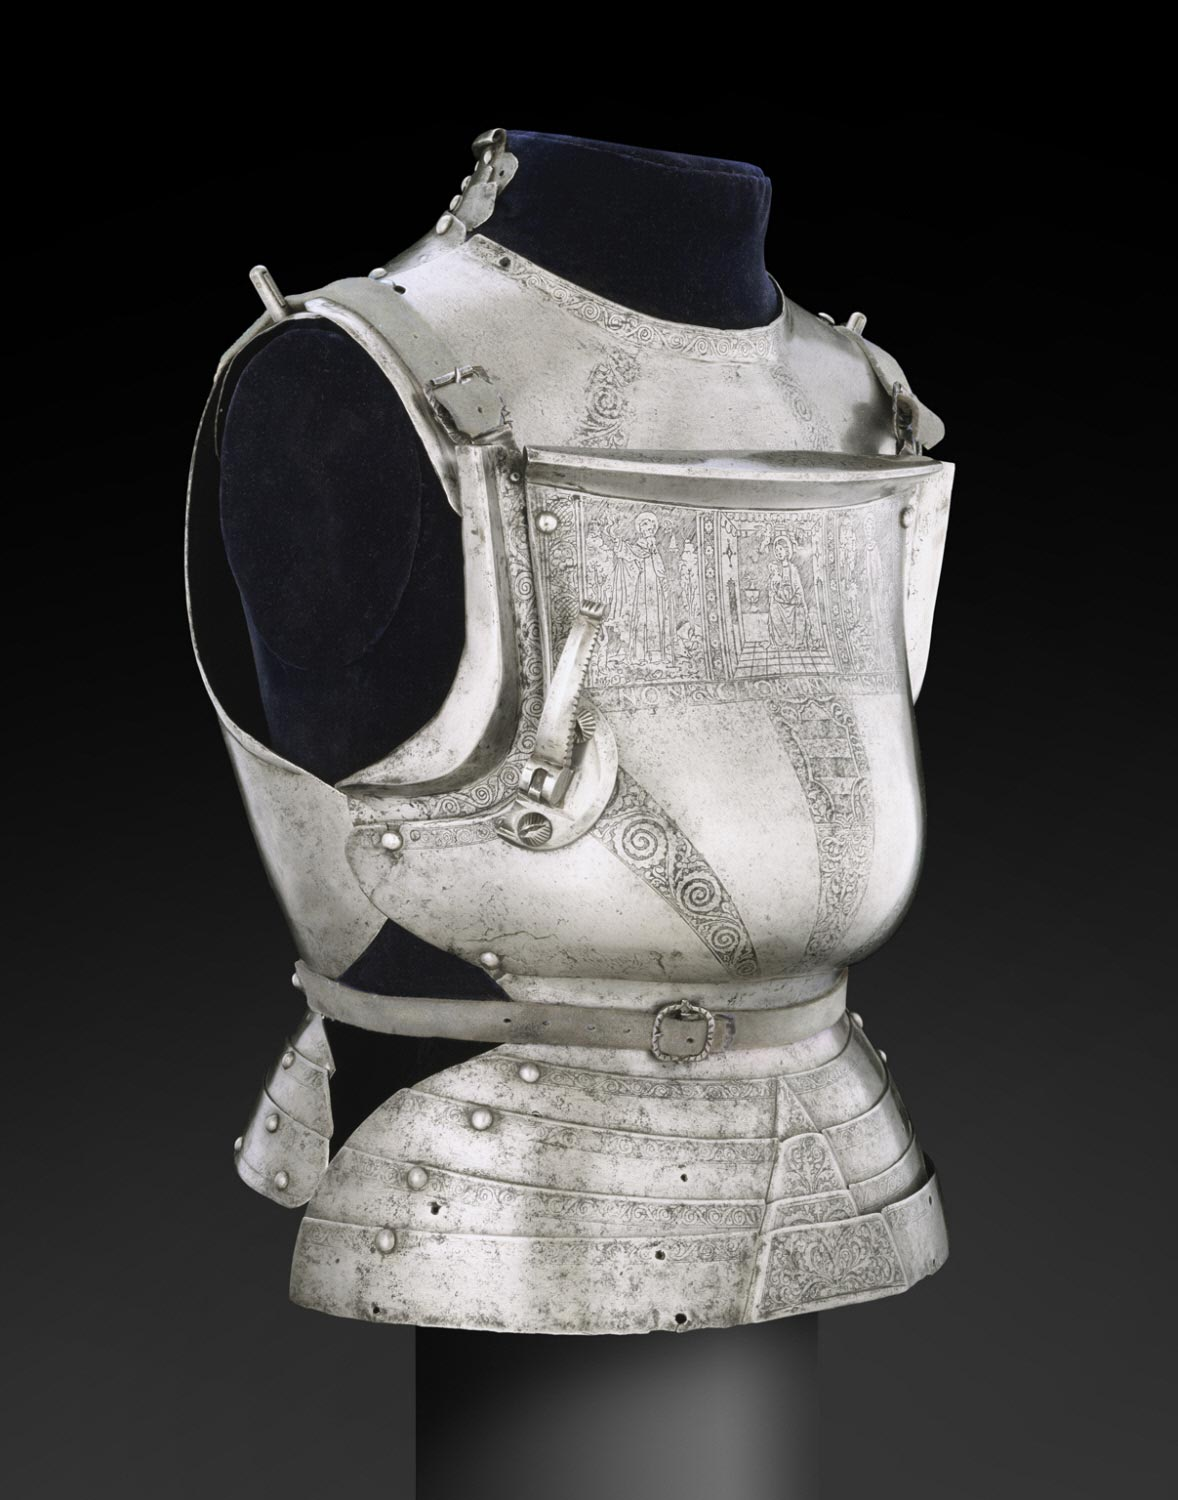 Gorget (neck defense) and Cuirass (torso defense), for use in the field